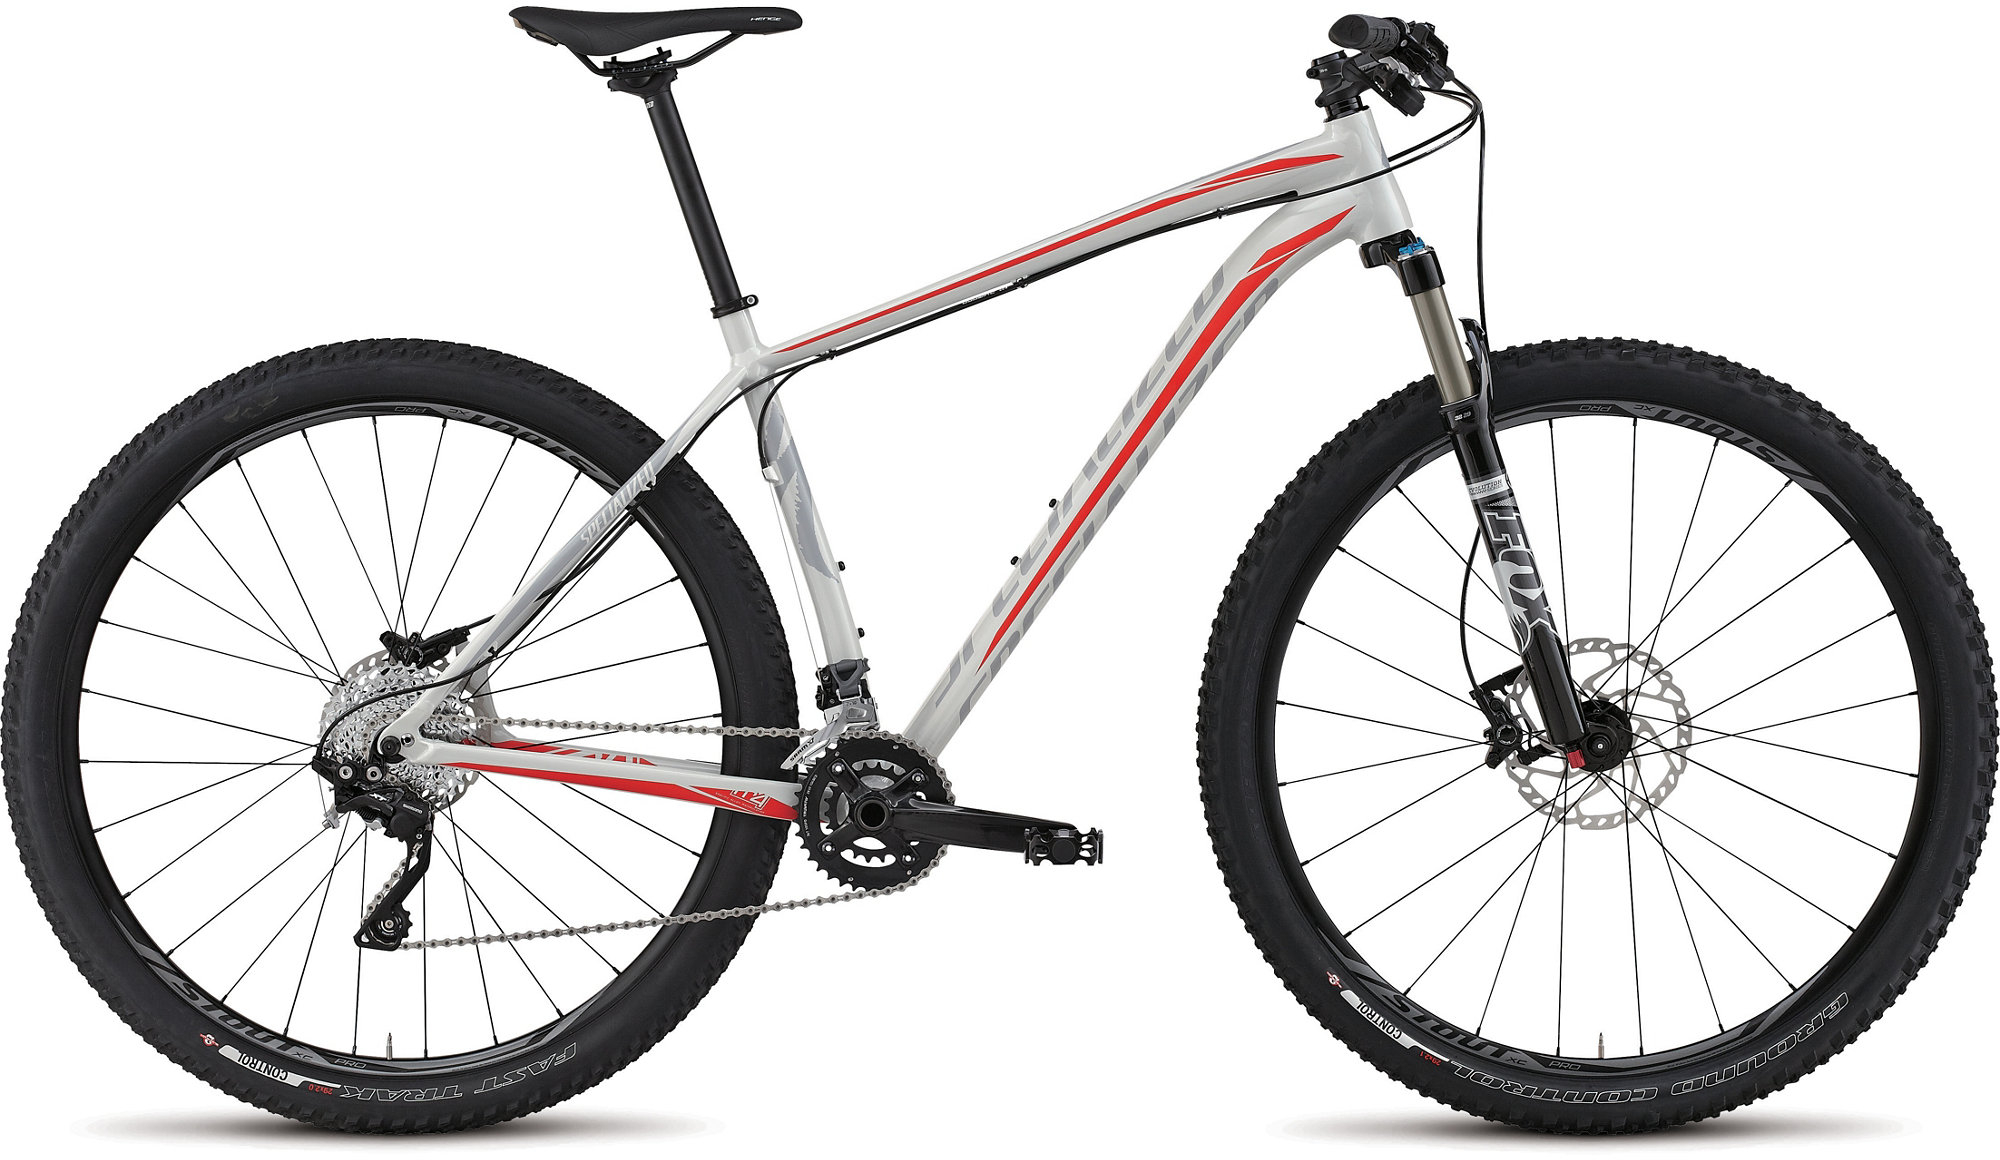 2015 Specialized Crave Pro - Specialized Concept Store